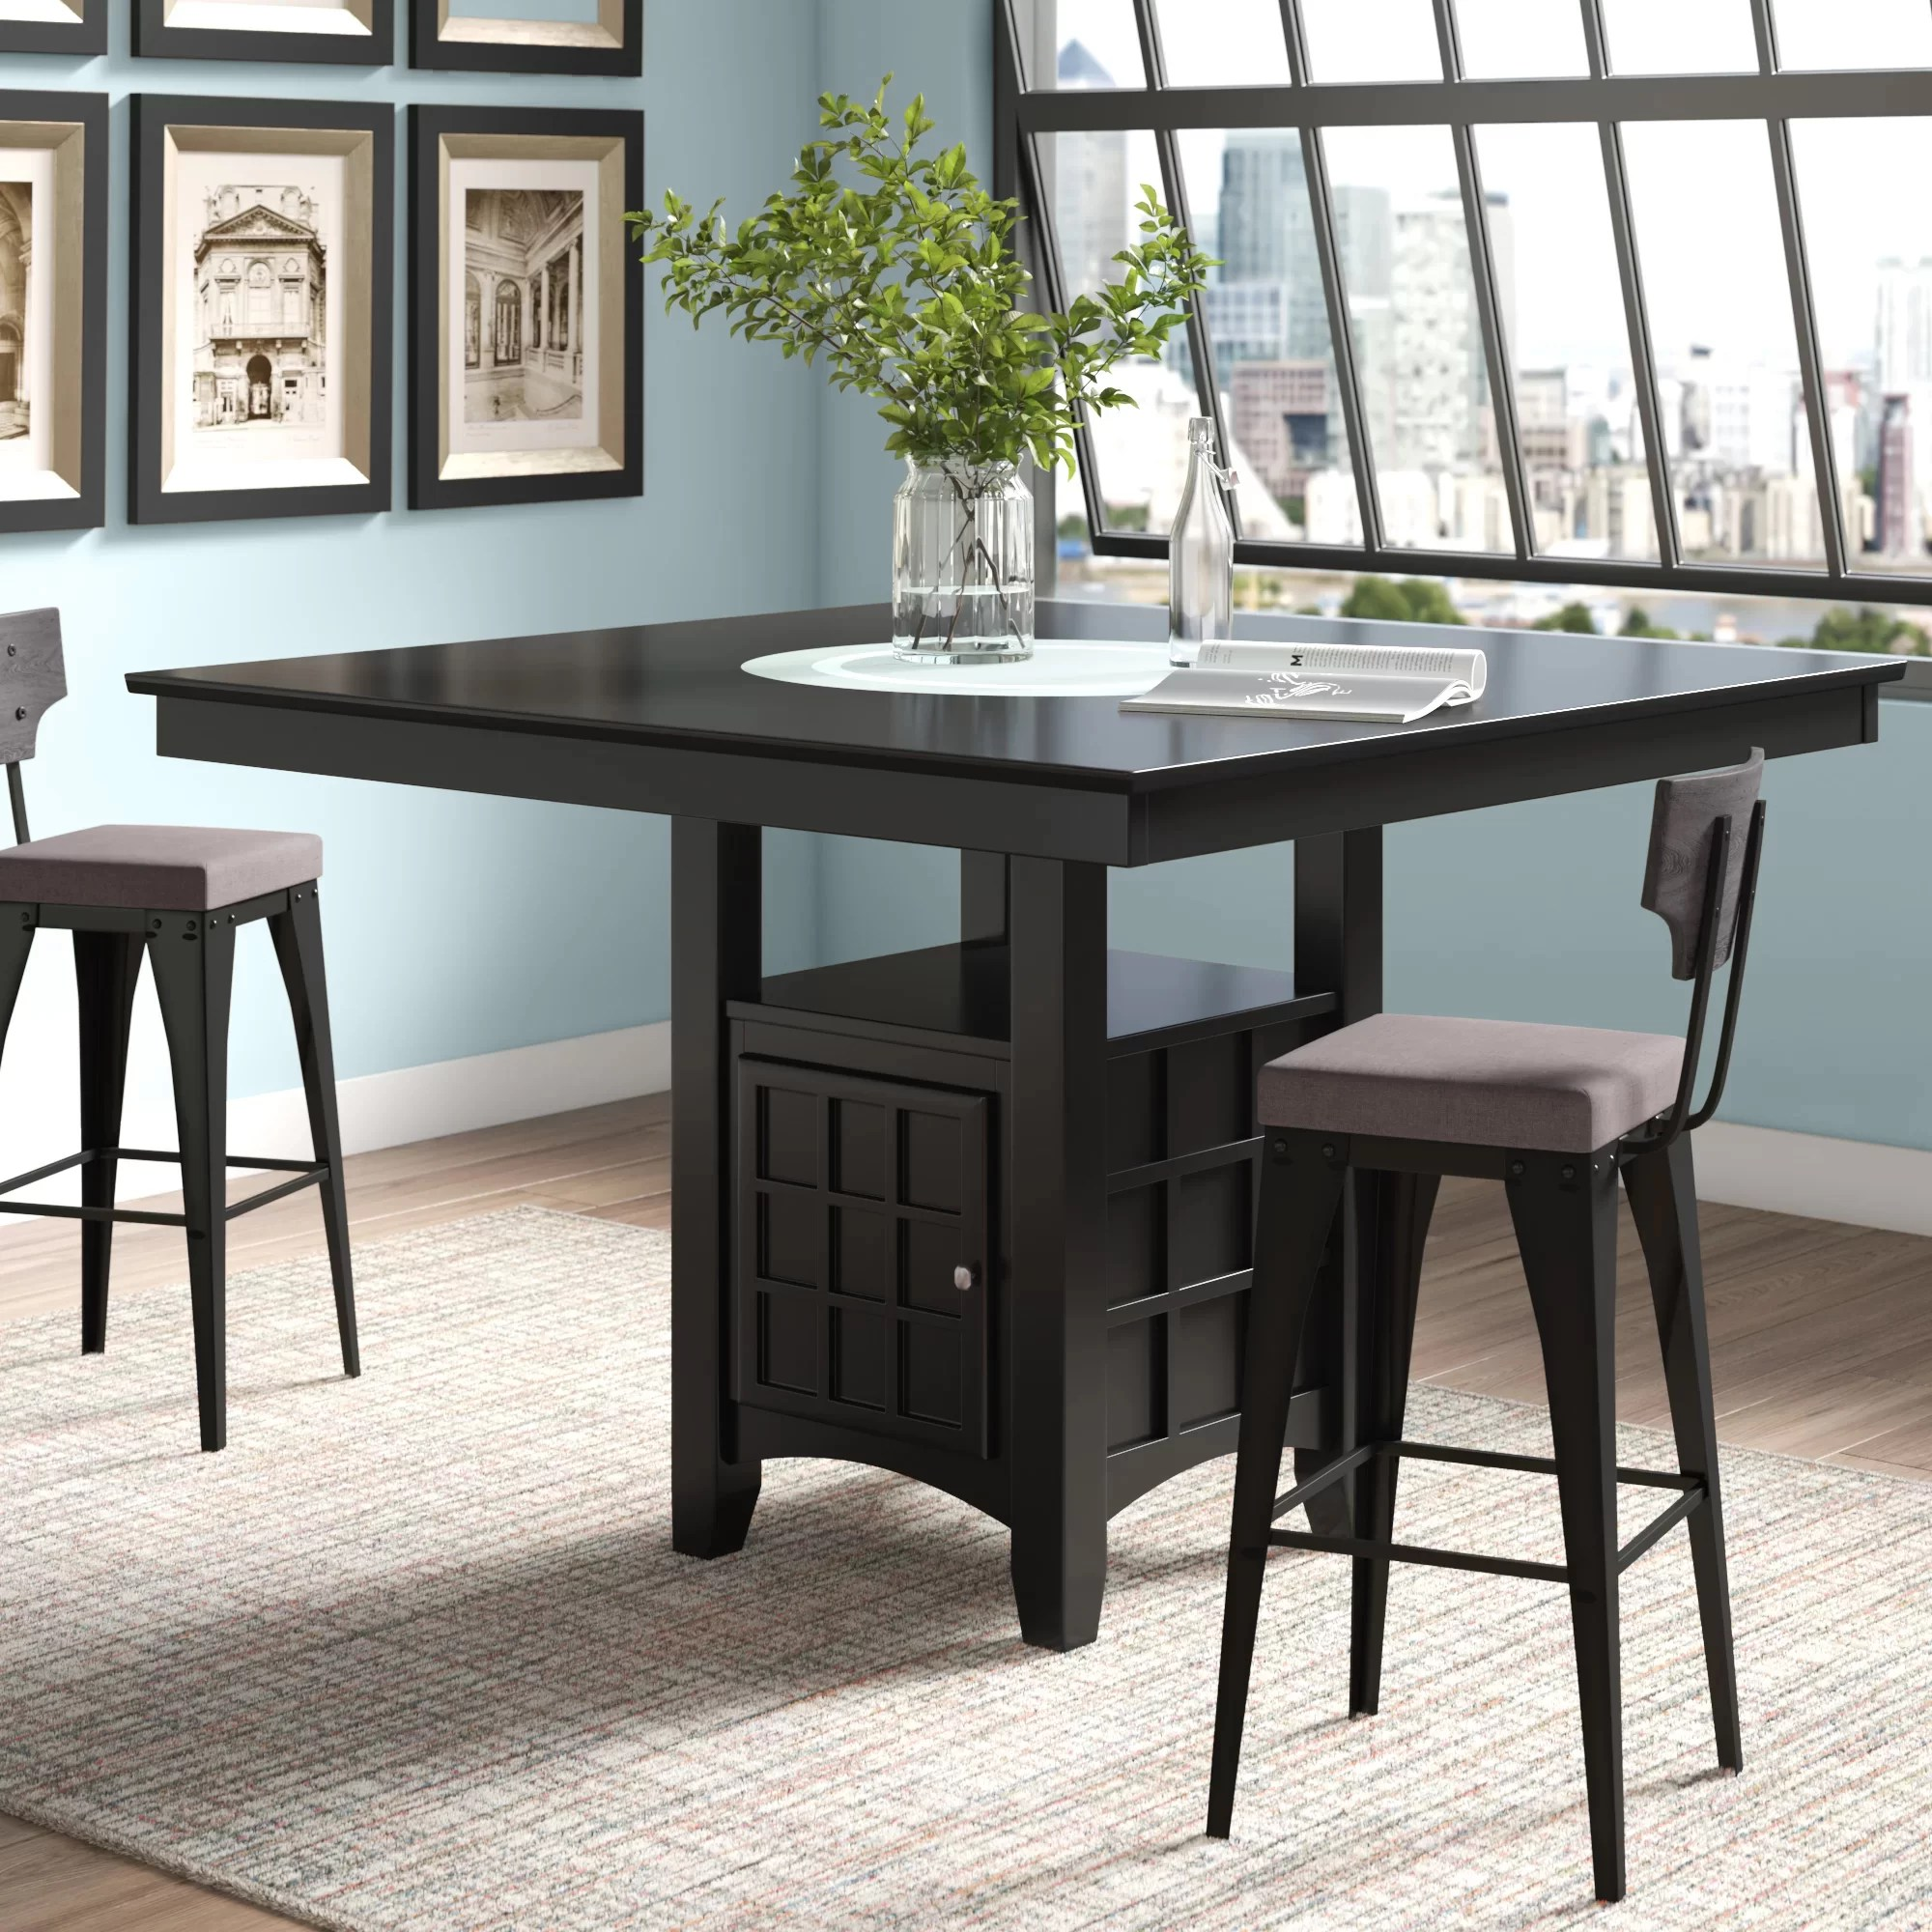 8 Seat Pub Table Kitchen Dining Tables You Ll Love In 2020 Wayfair